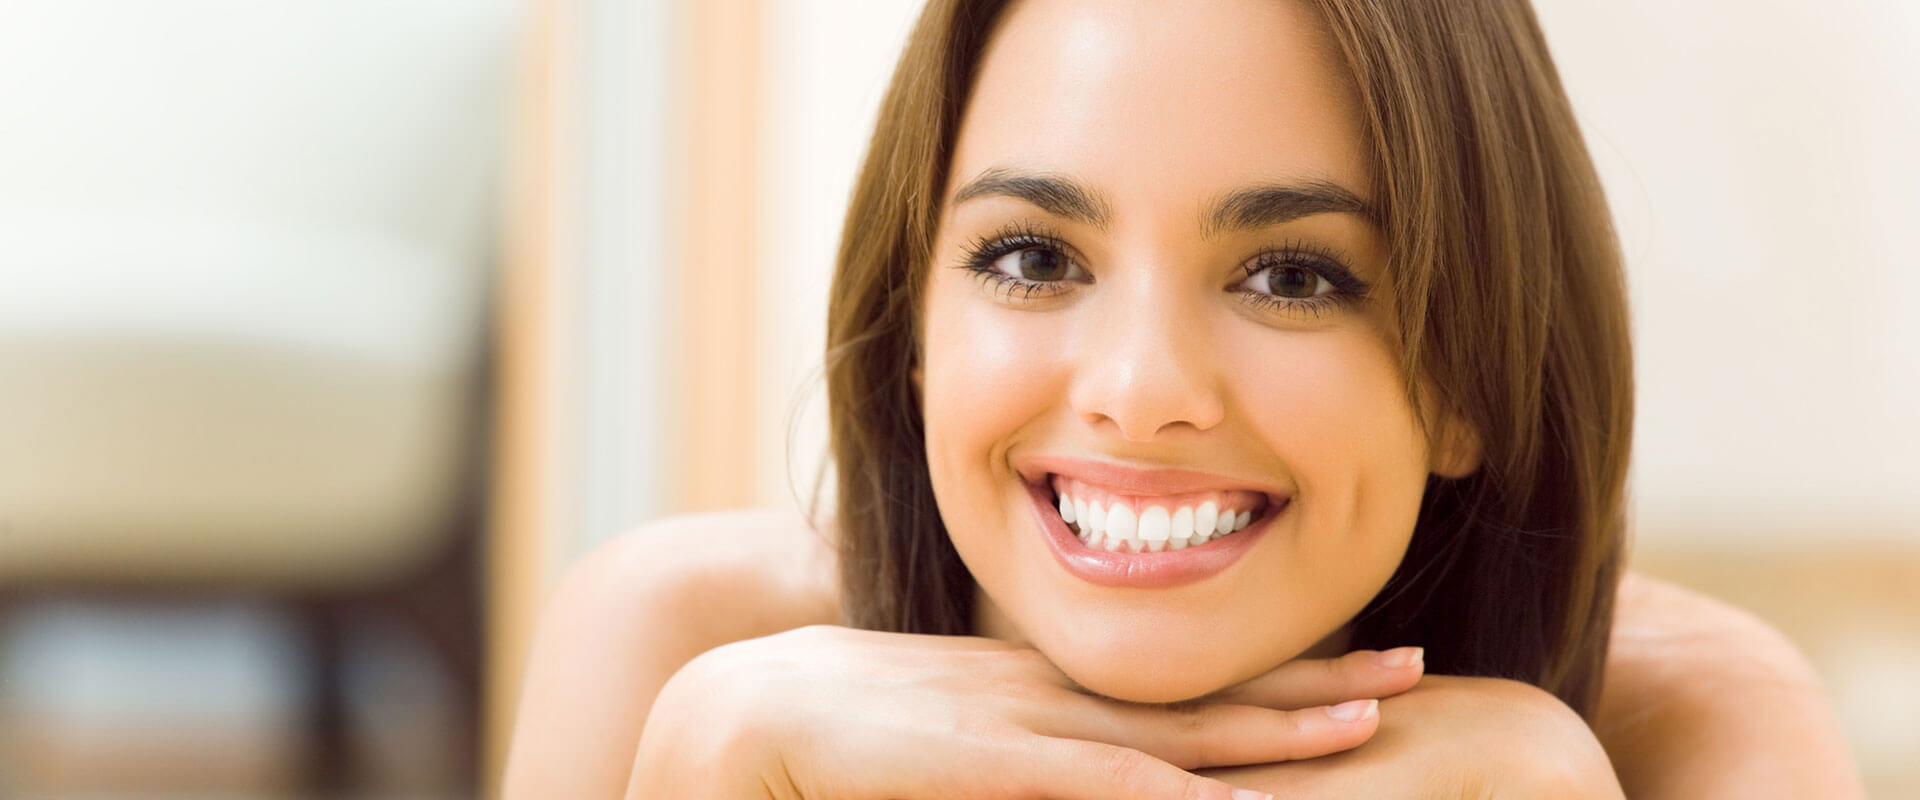 Beautiful showing off her bright white smile after teeth whitening